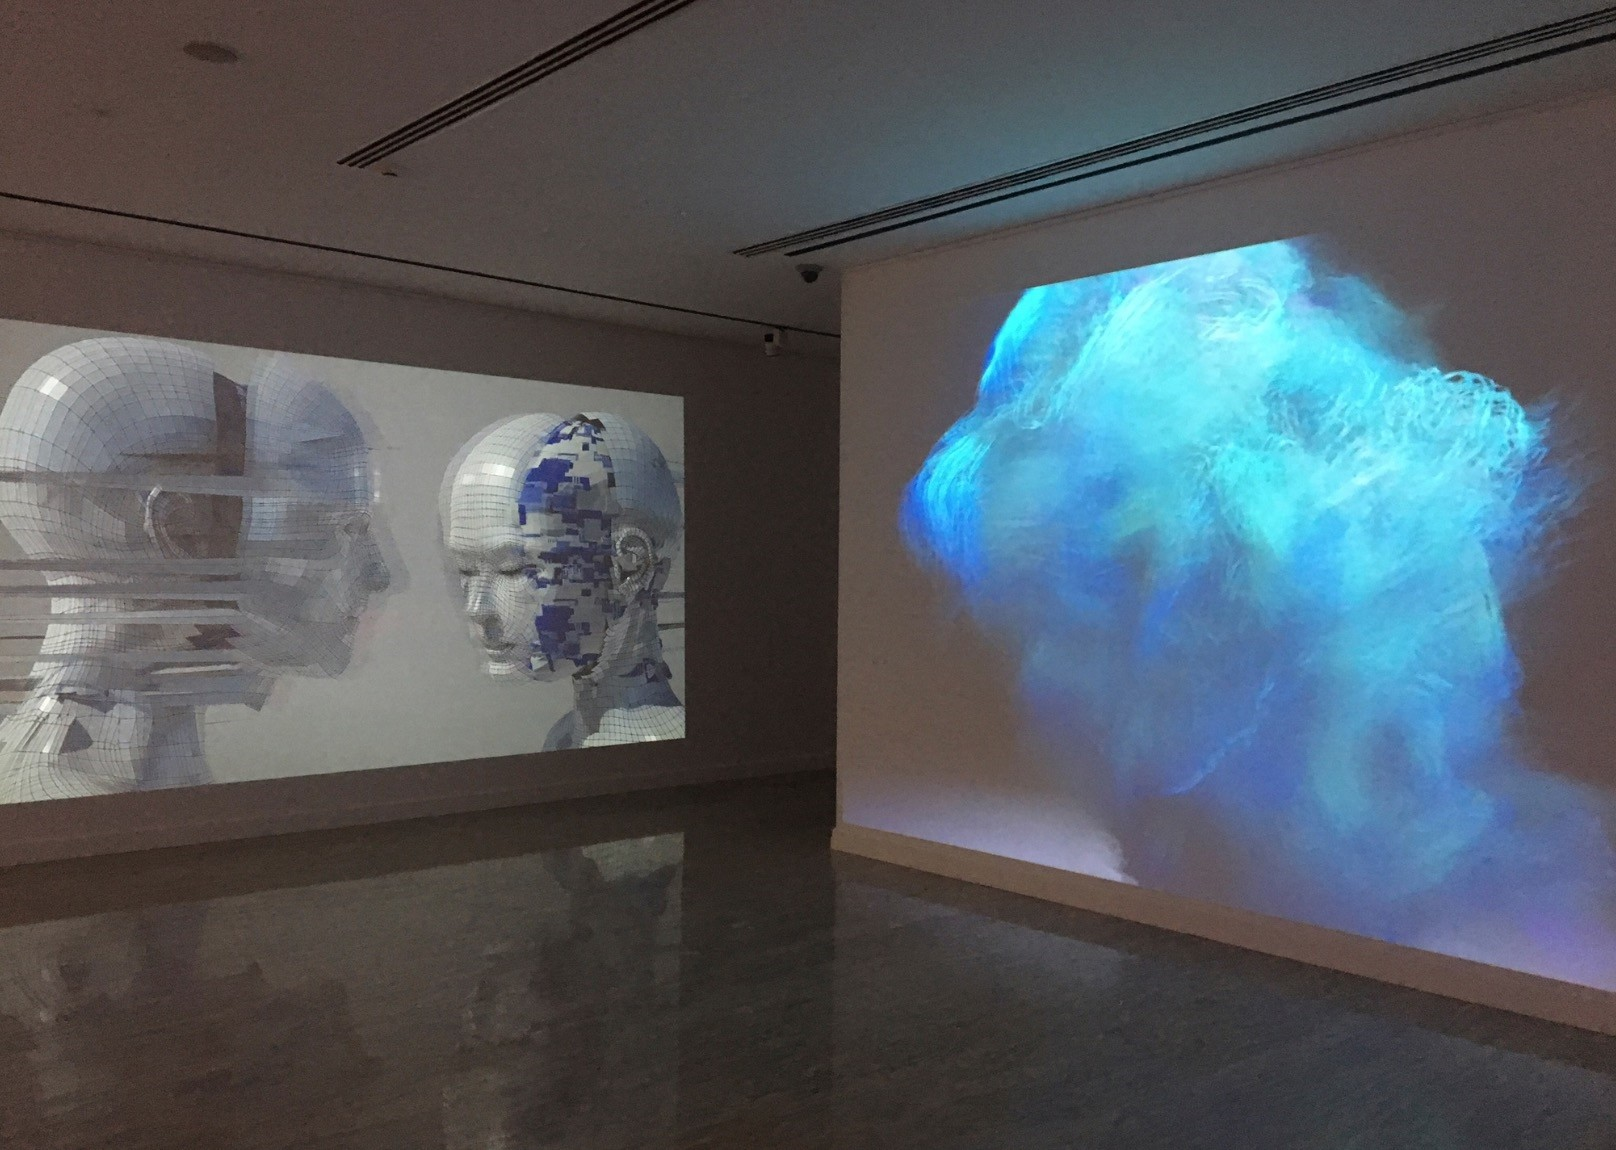 u201cUntitled Fur Suitu201d by A Bill Miller plays at the center projection screen in tufts of soft and pacifying virtual textures with Elena Romenkovau2019s u201cTwo 20001_1.u201d